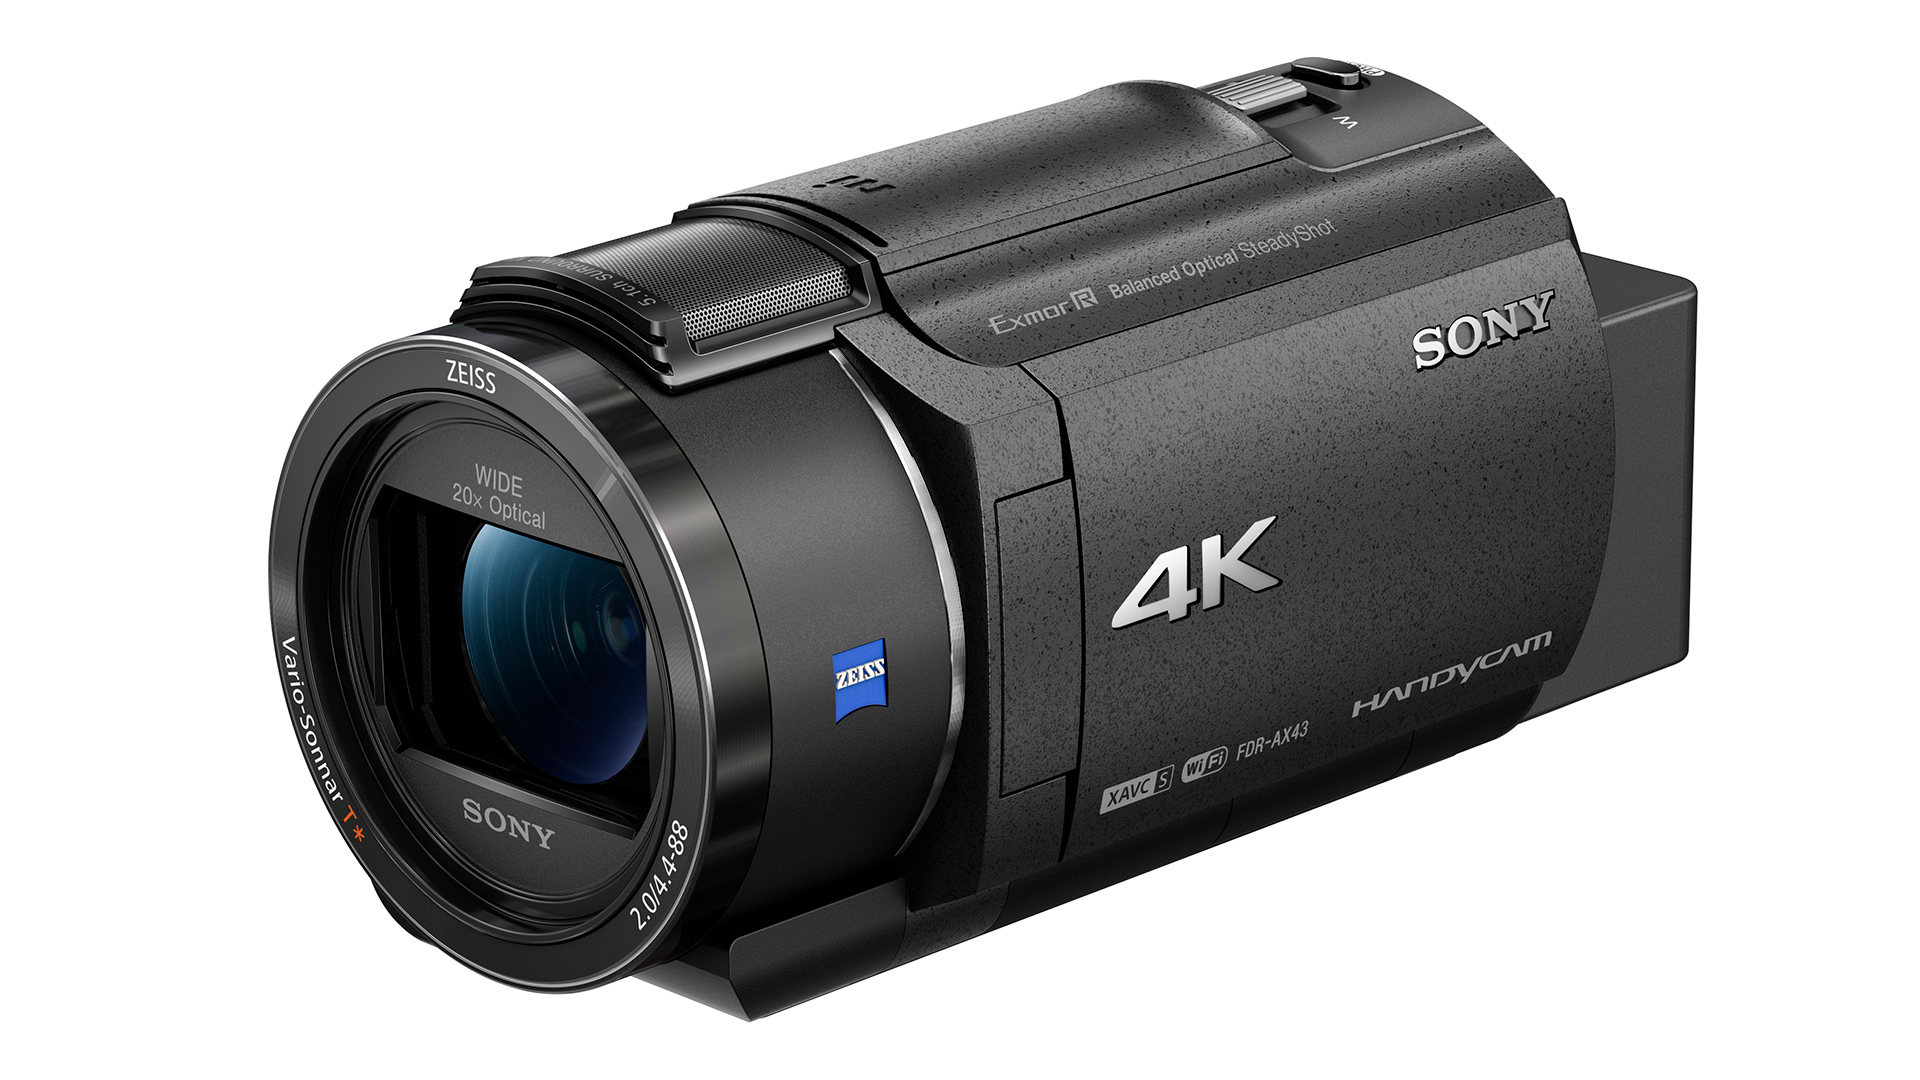 The Sony FDR-AX3 camcorder.